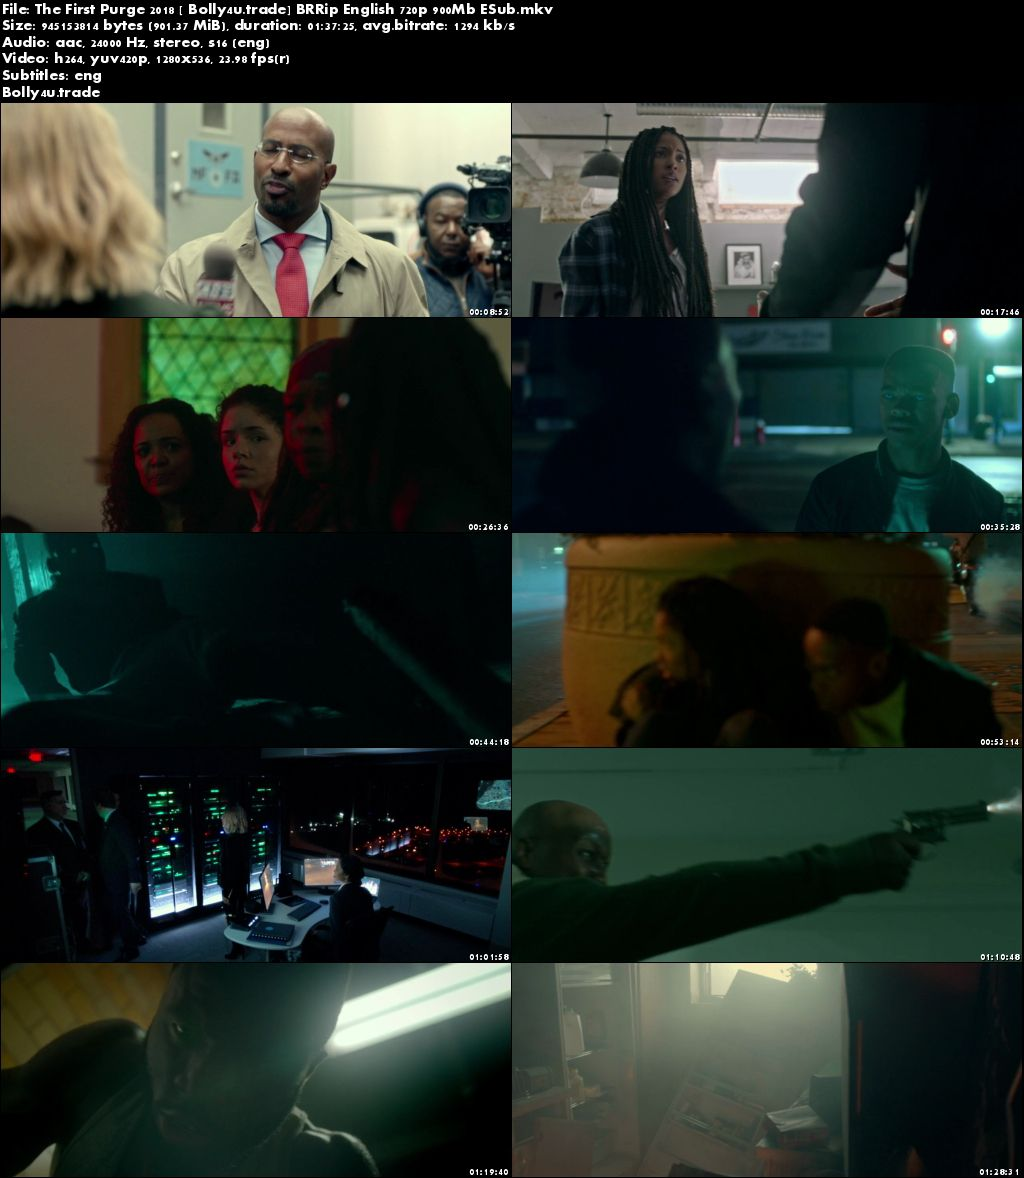 The First Purge 2018 BRRip 900MB English 720p ESub Download